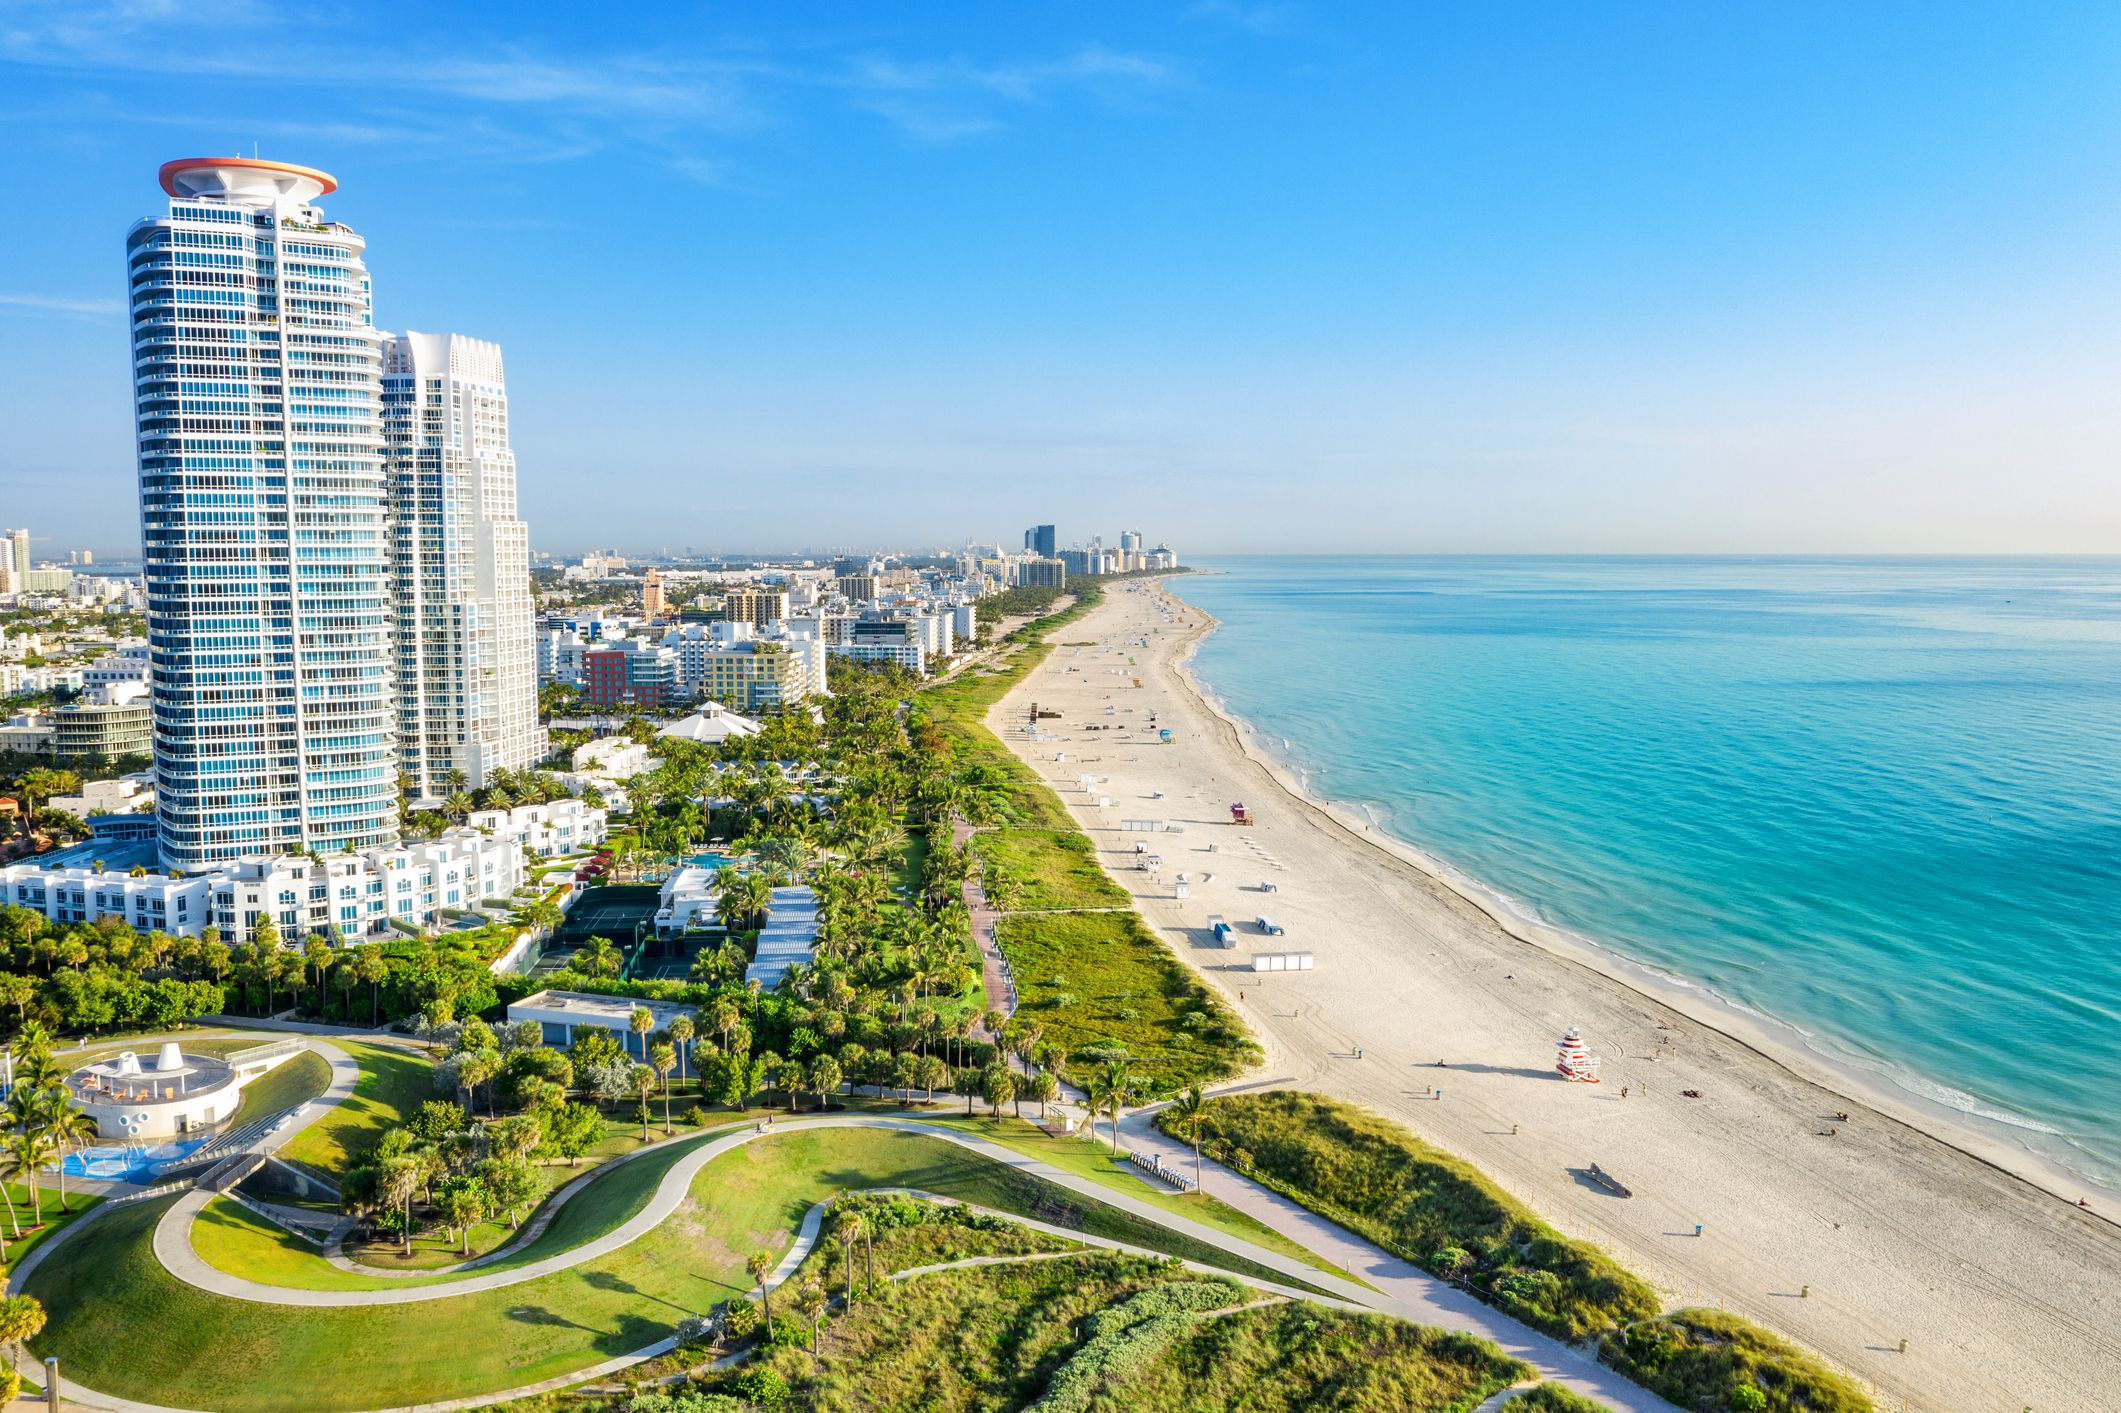 25 Best Things to Do in Miami